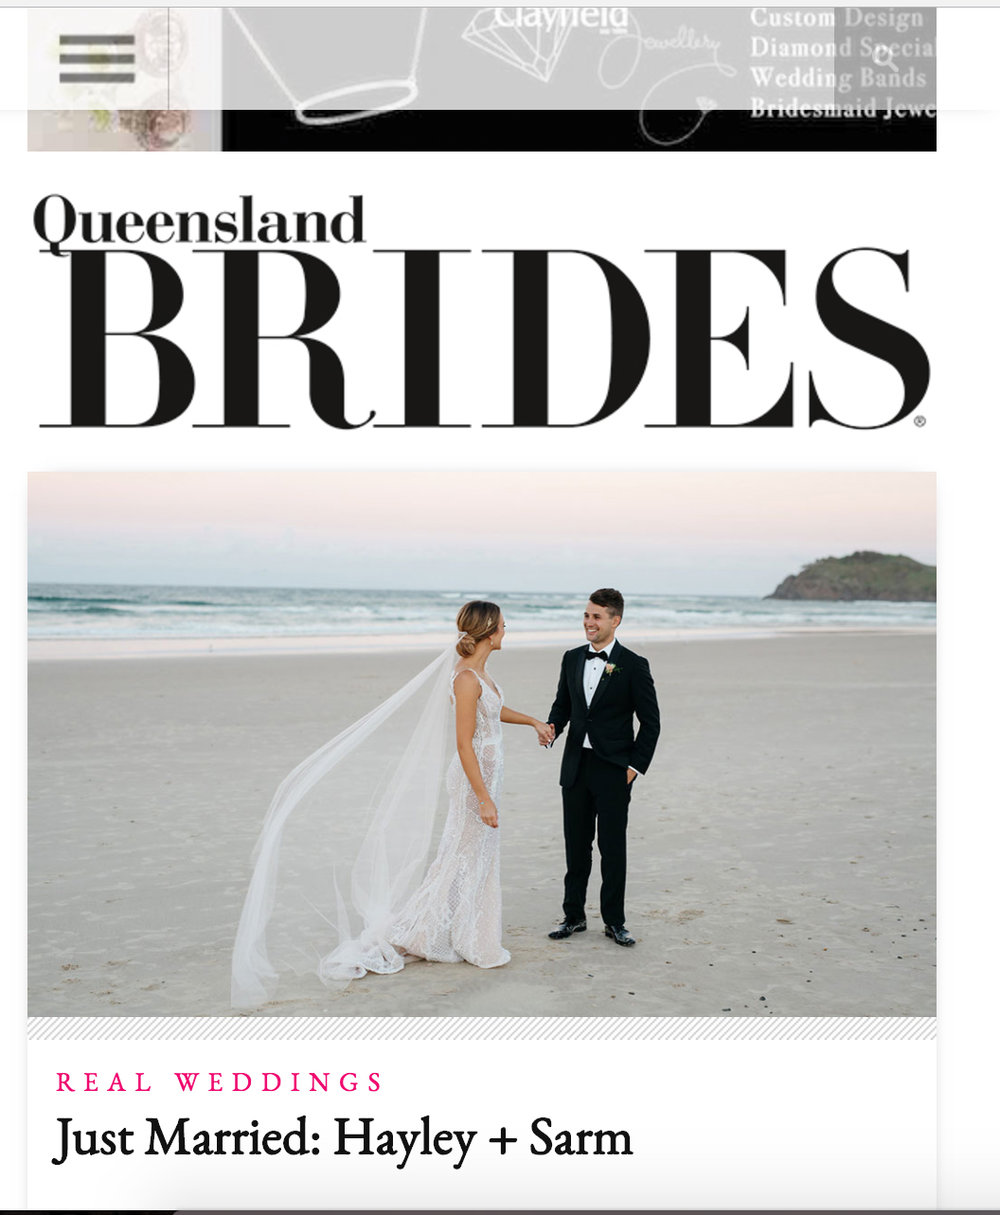 Brisbane Wedding Photographer | Moments by Frankie featured in Queensland Brides Magazine